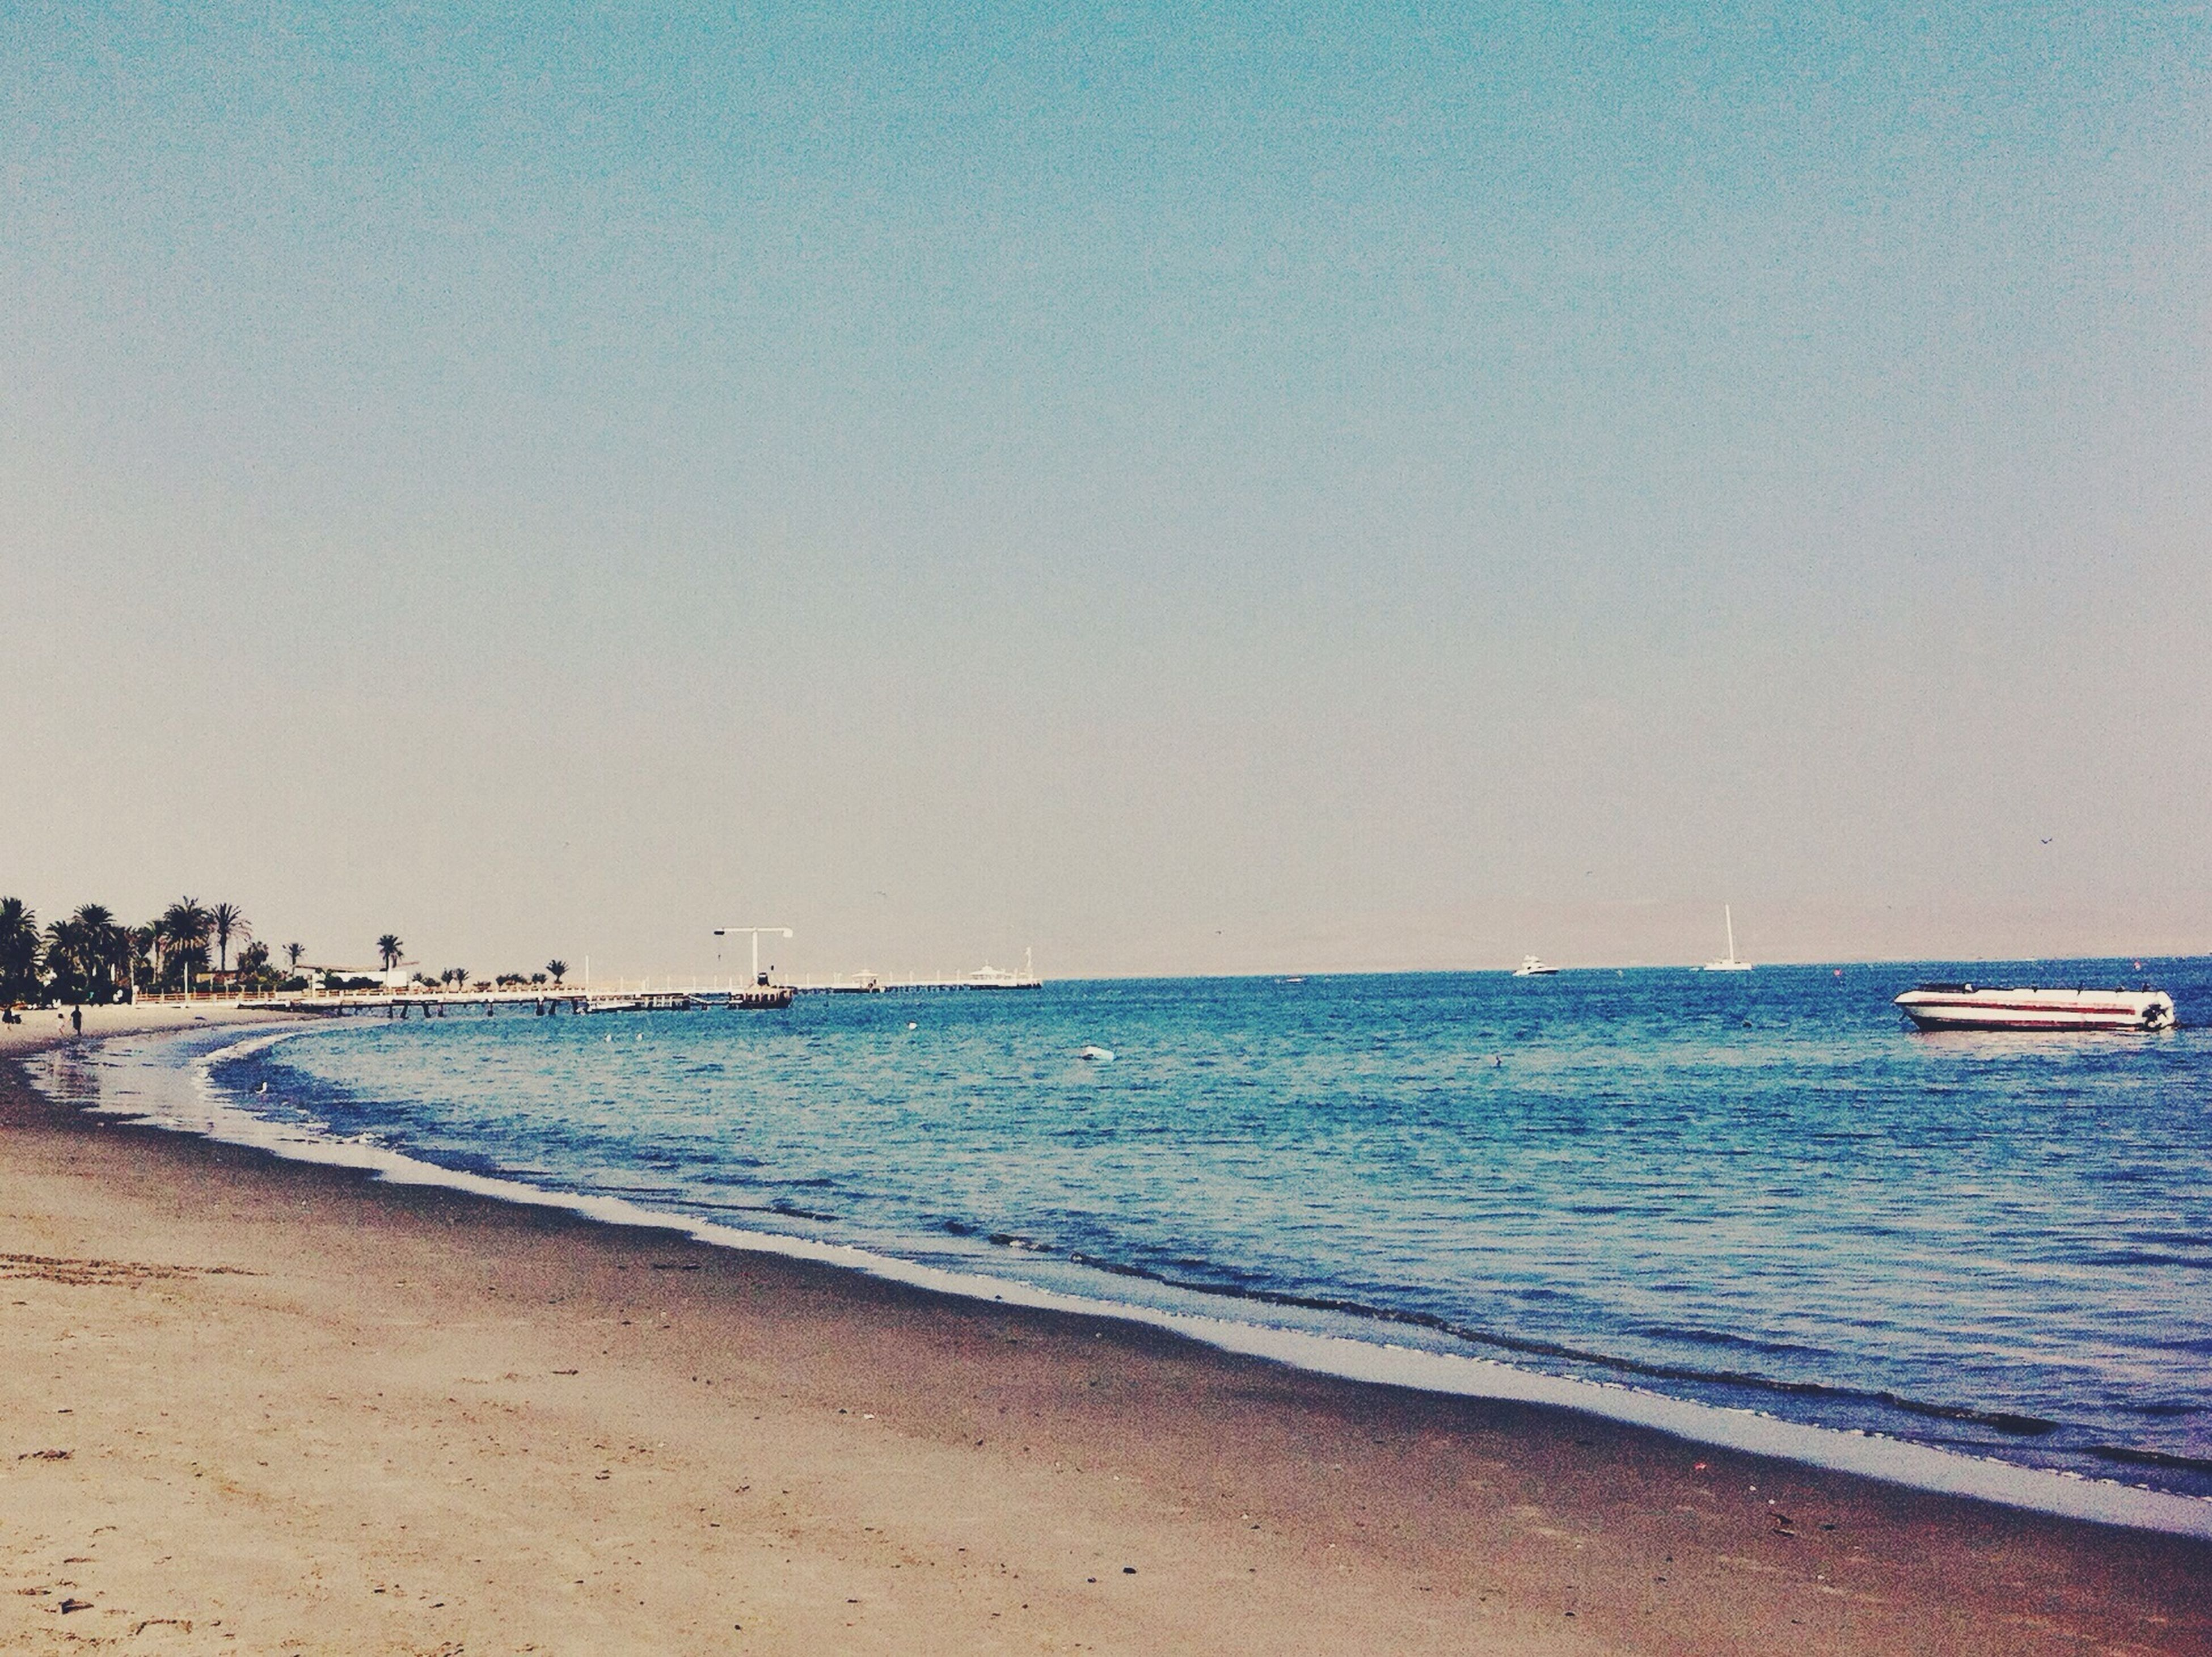 sea, beach, water, clear sky, copy space, shore, sand, horizon over water, tranquility, tranquil scene, nautical vessel, scenics, nature, beauty in nature, incidental people, coastline, transportation, boat, outdoors, idyllic